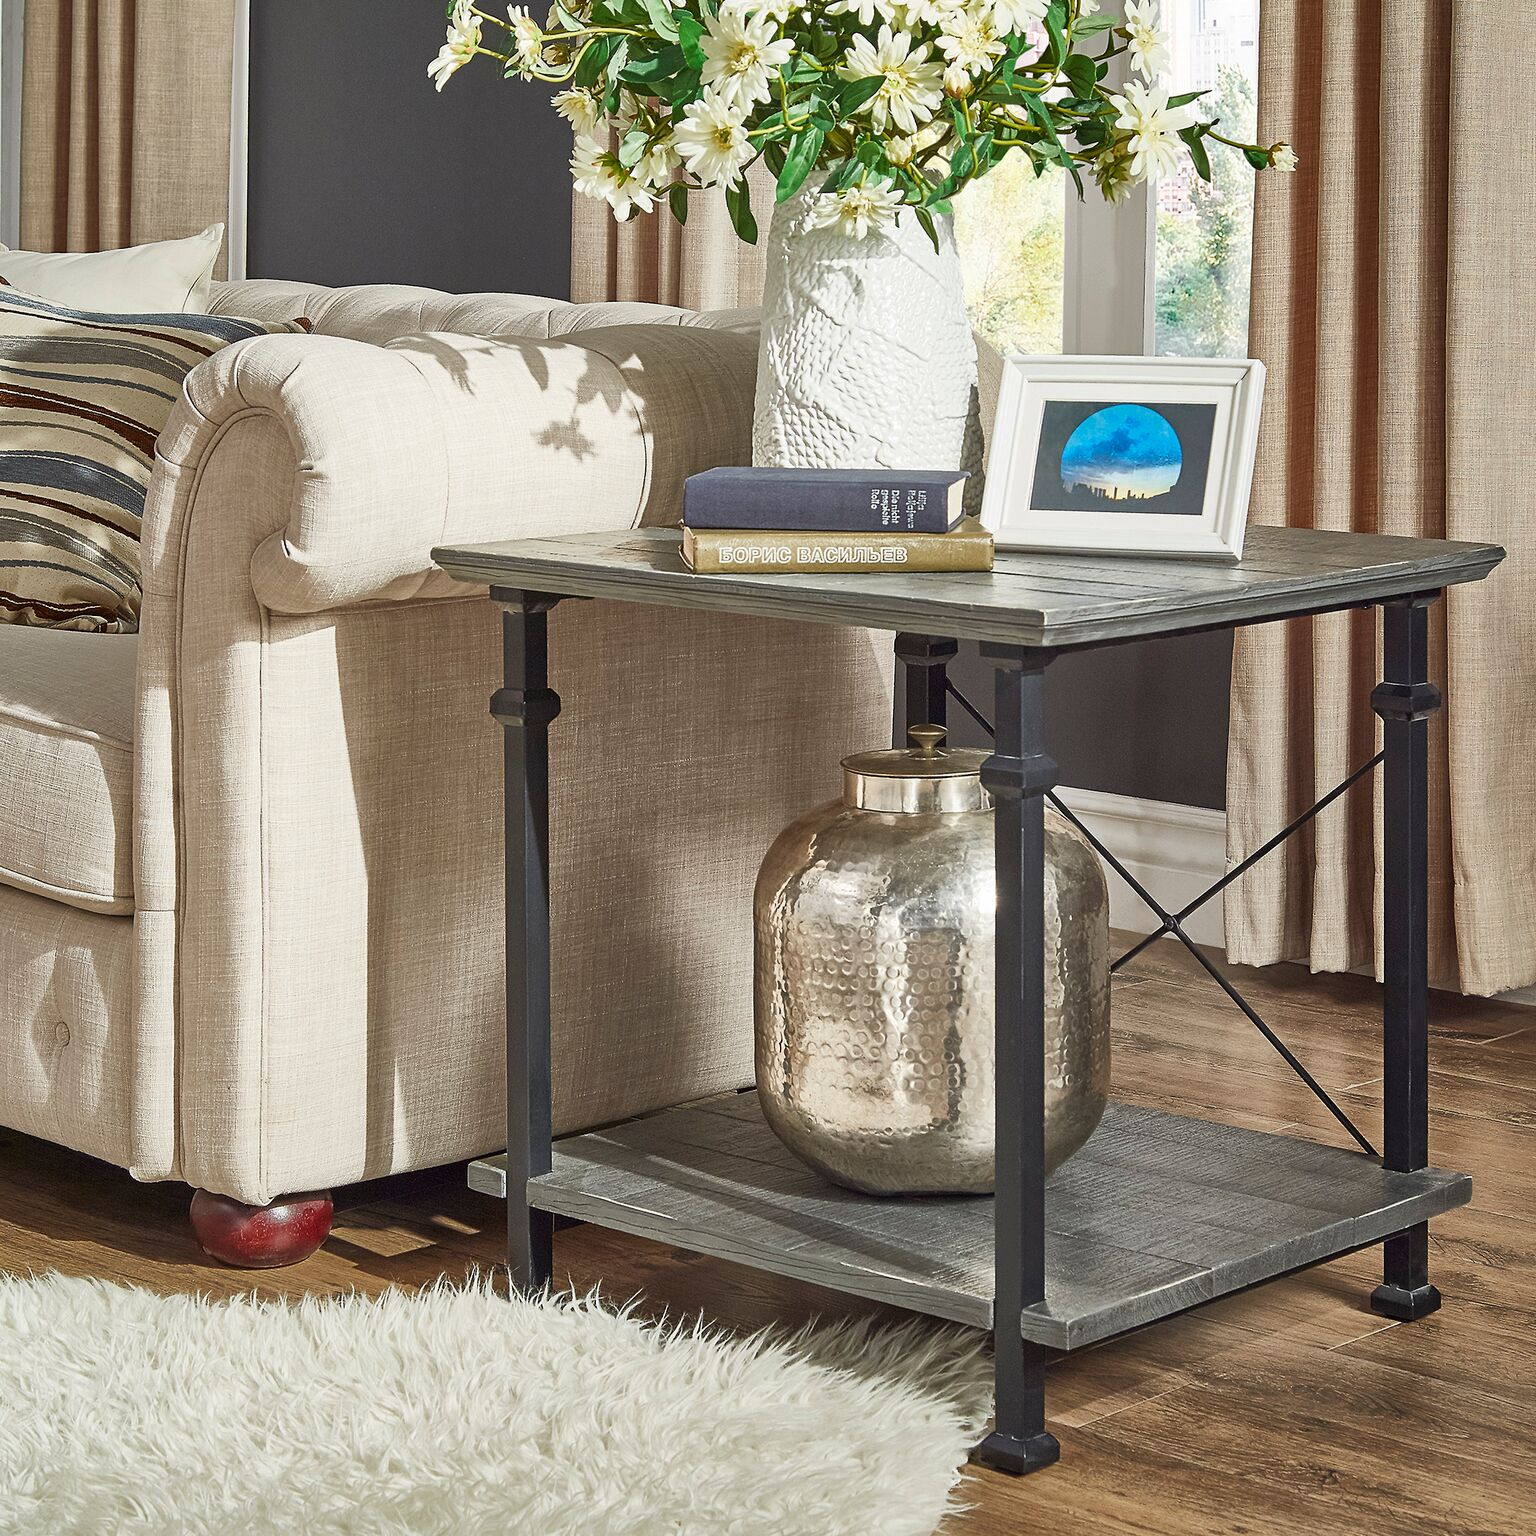 Weston Home Metal Supports X-Frame End Table, Grey